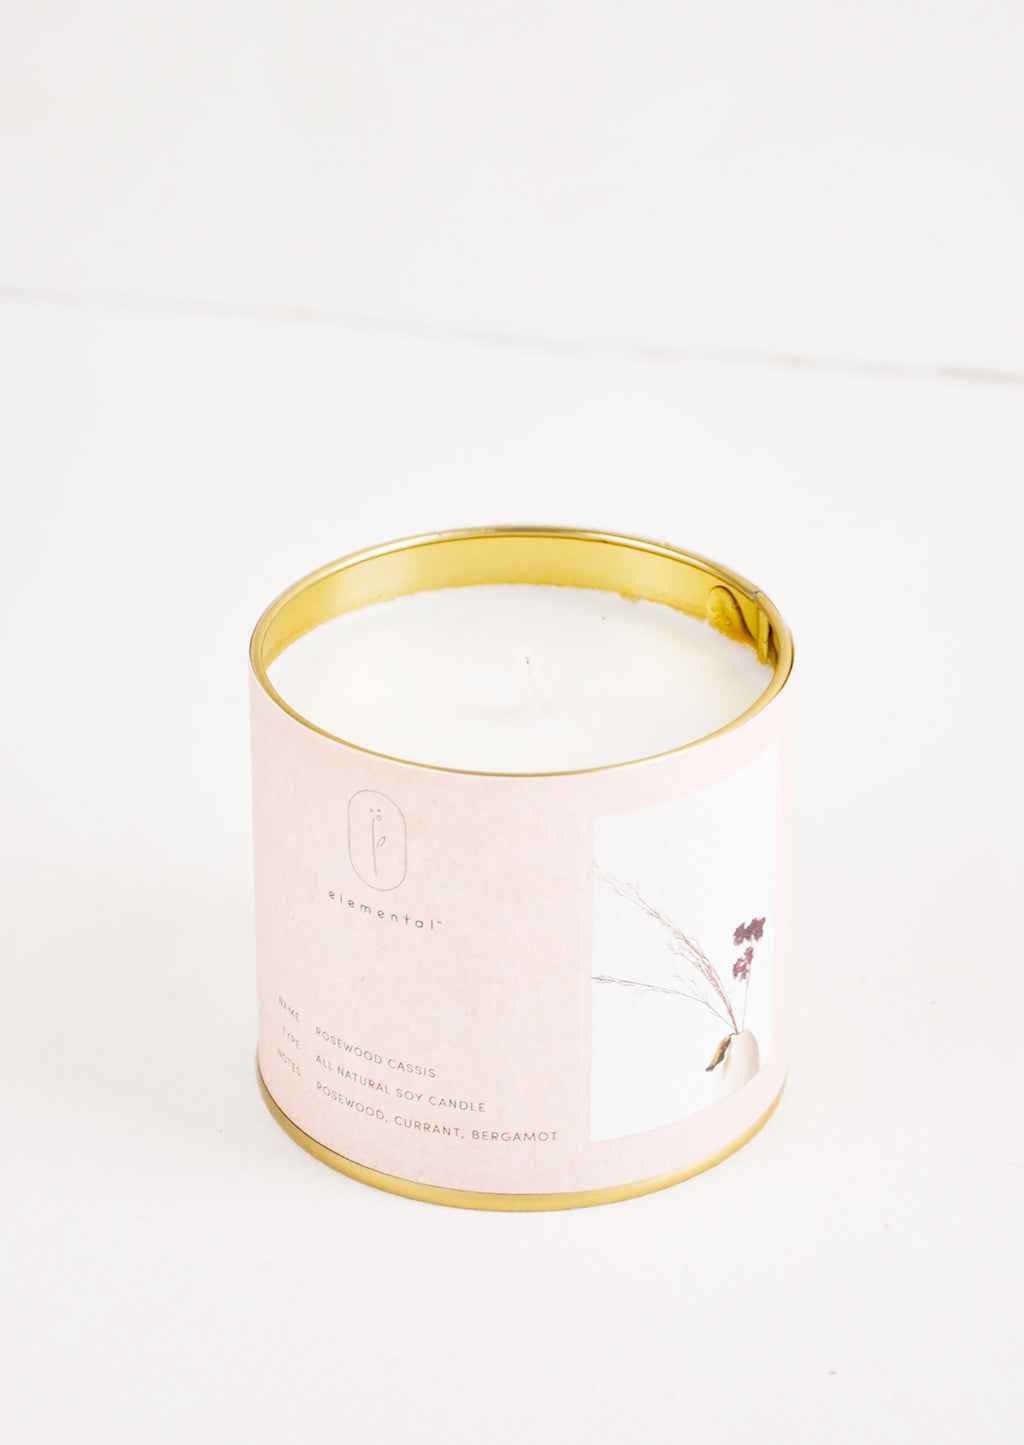 Rosewood Cassis: A candle in a brass tine with a pale pink label featuring a picture of a flower.